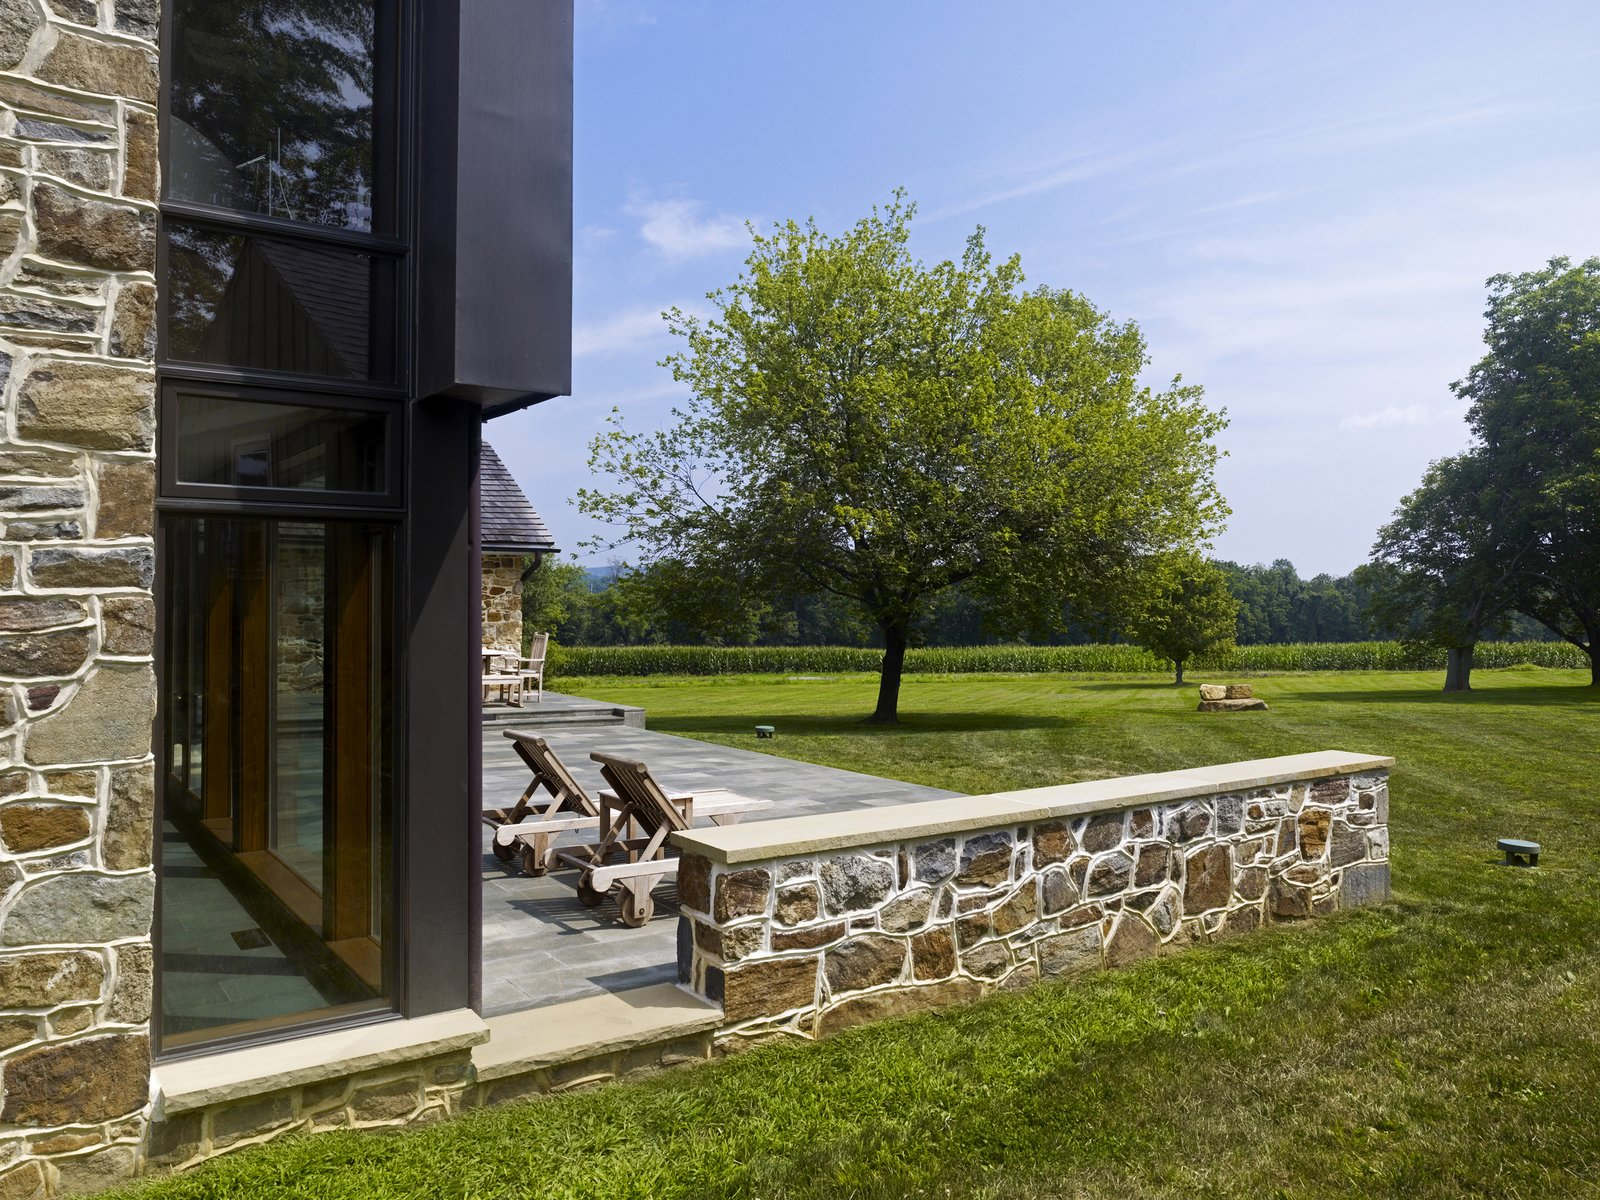 Outdoor, Trees, Back Yard, Field, Hardscapes, Large, Landscape, and Vegetables A new stone patio connects living spaces to the rural site beyond.  Outdoor Vegetables Landscape Photos from Modern Farmhouse Addition